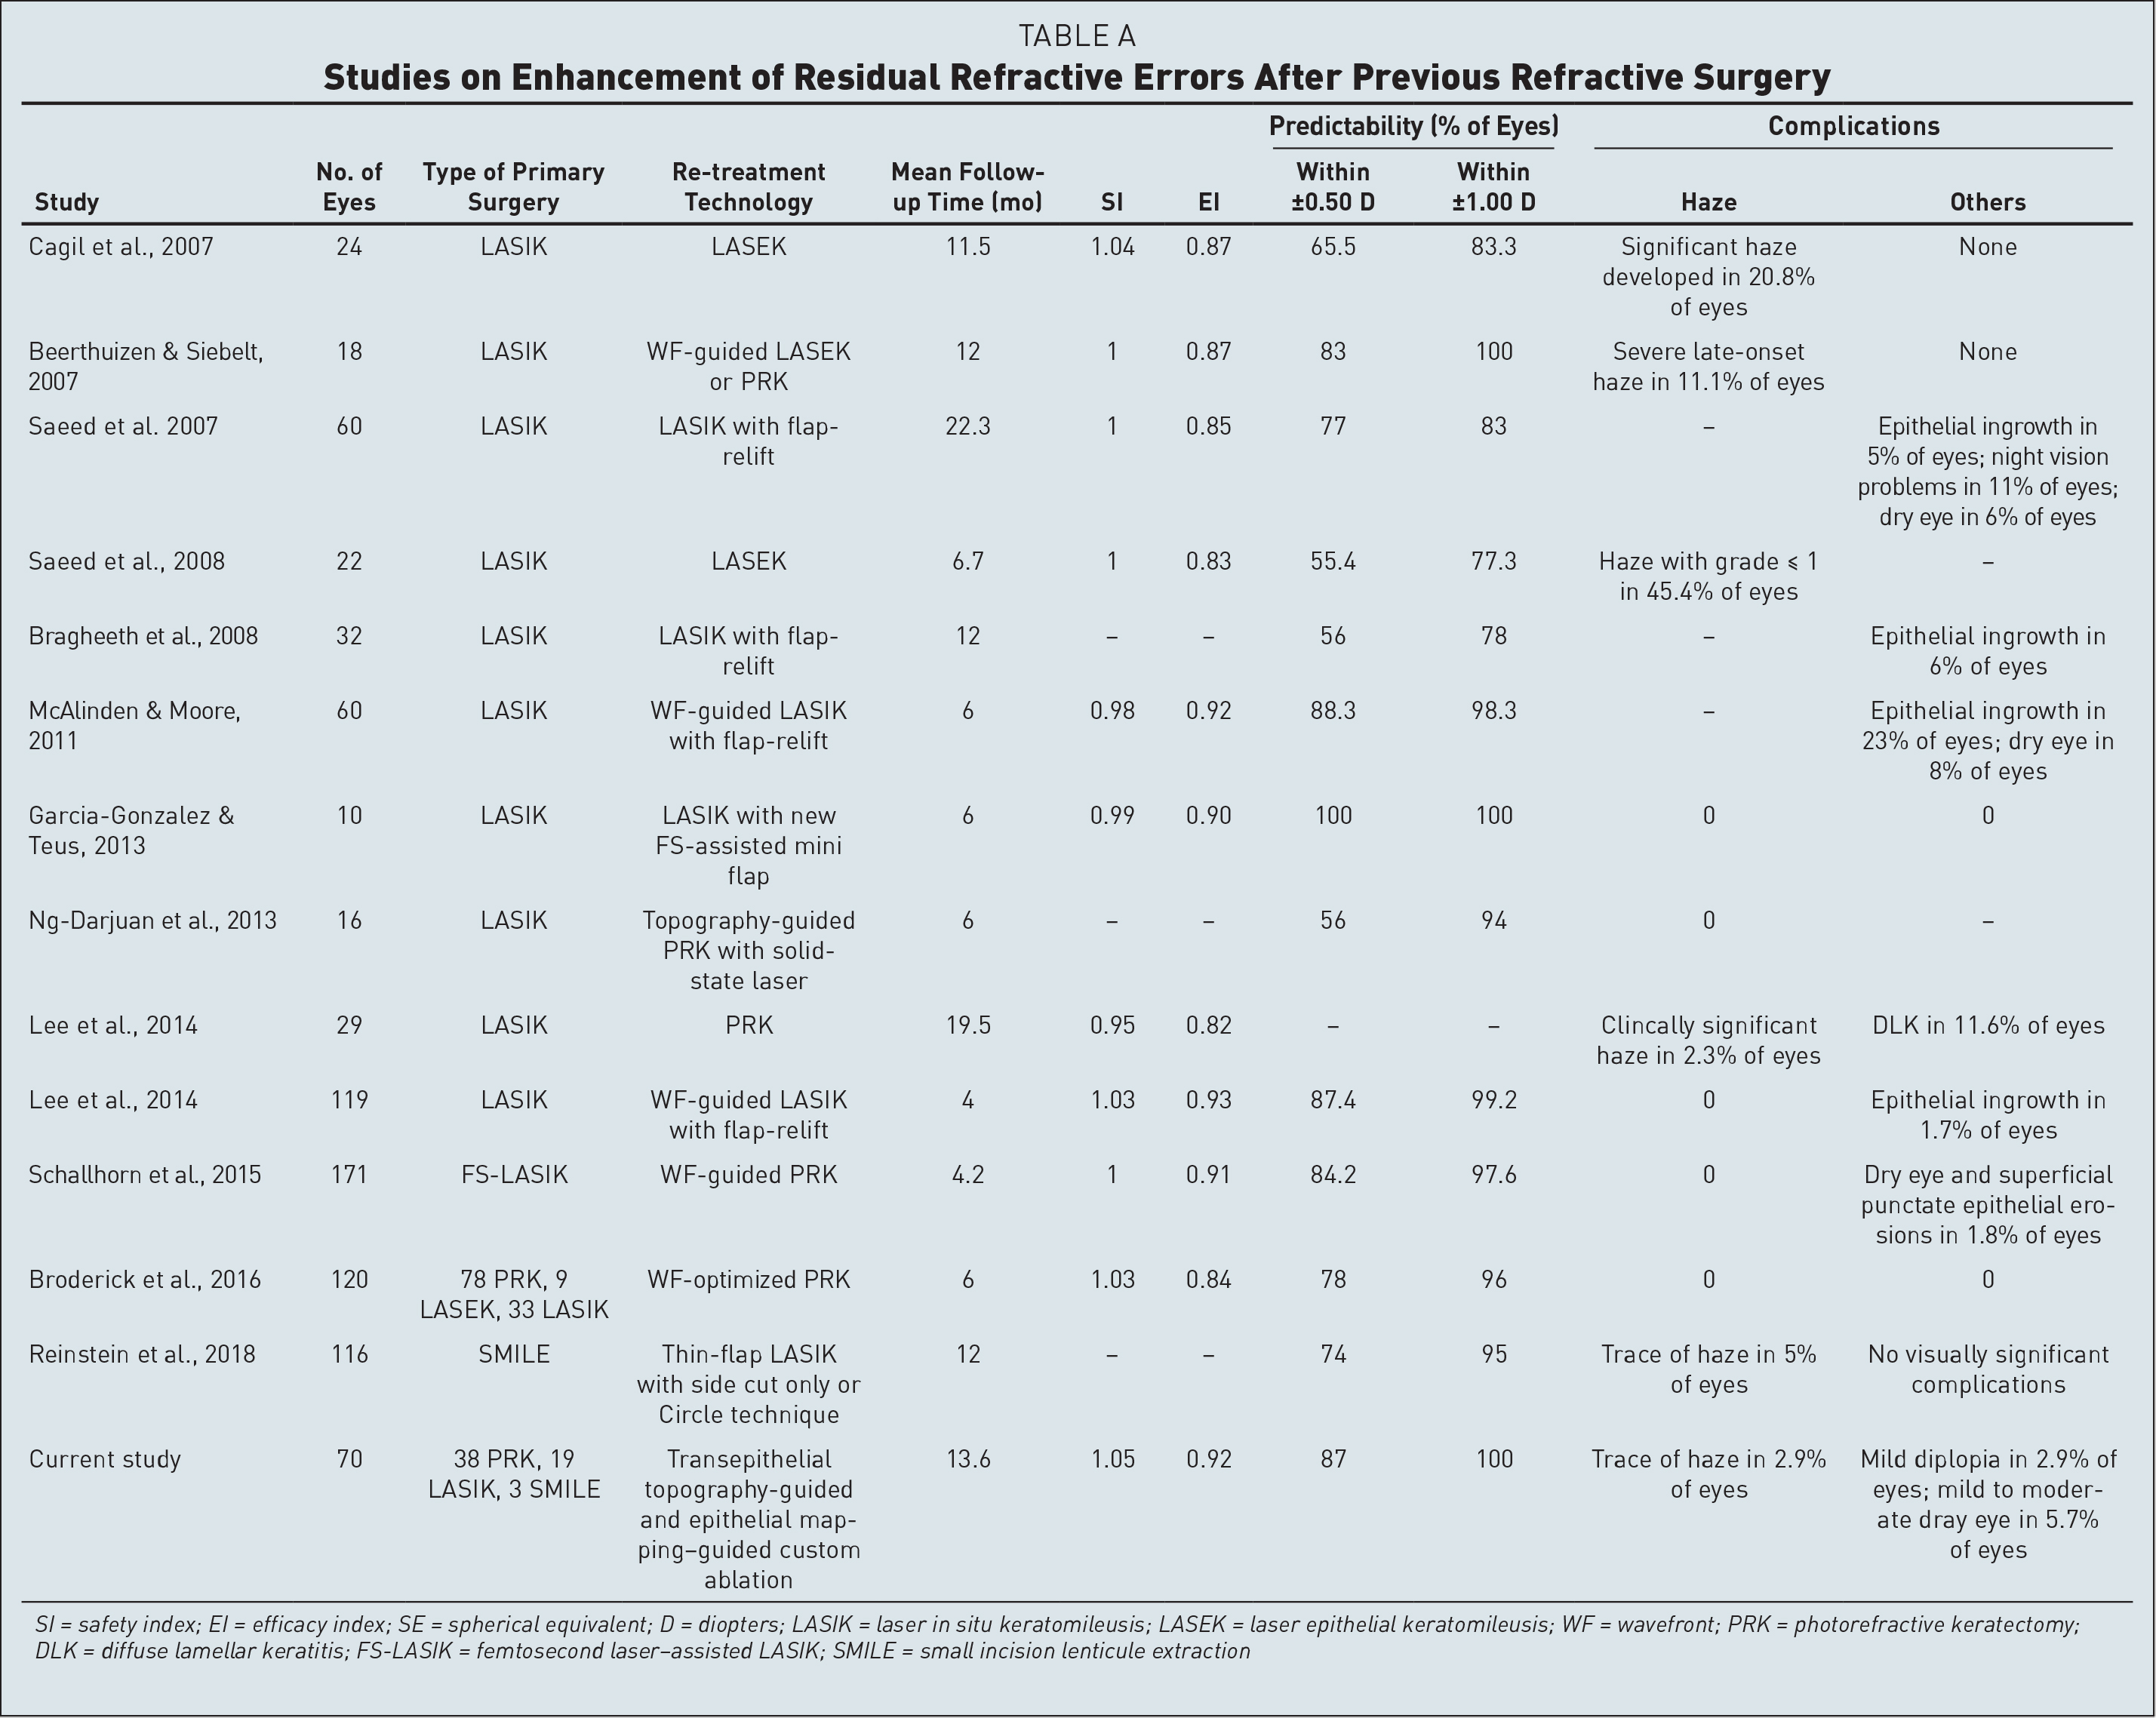 Studies on Enhancement of Residual Refractive Errors After Previous Refractive Surgery